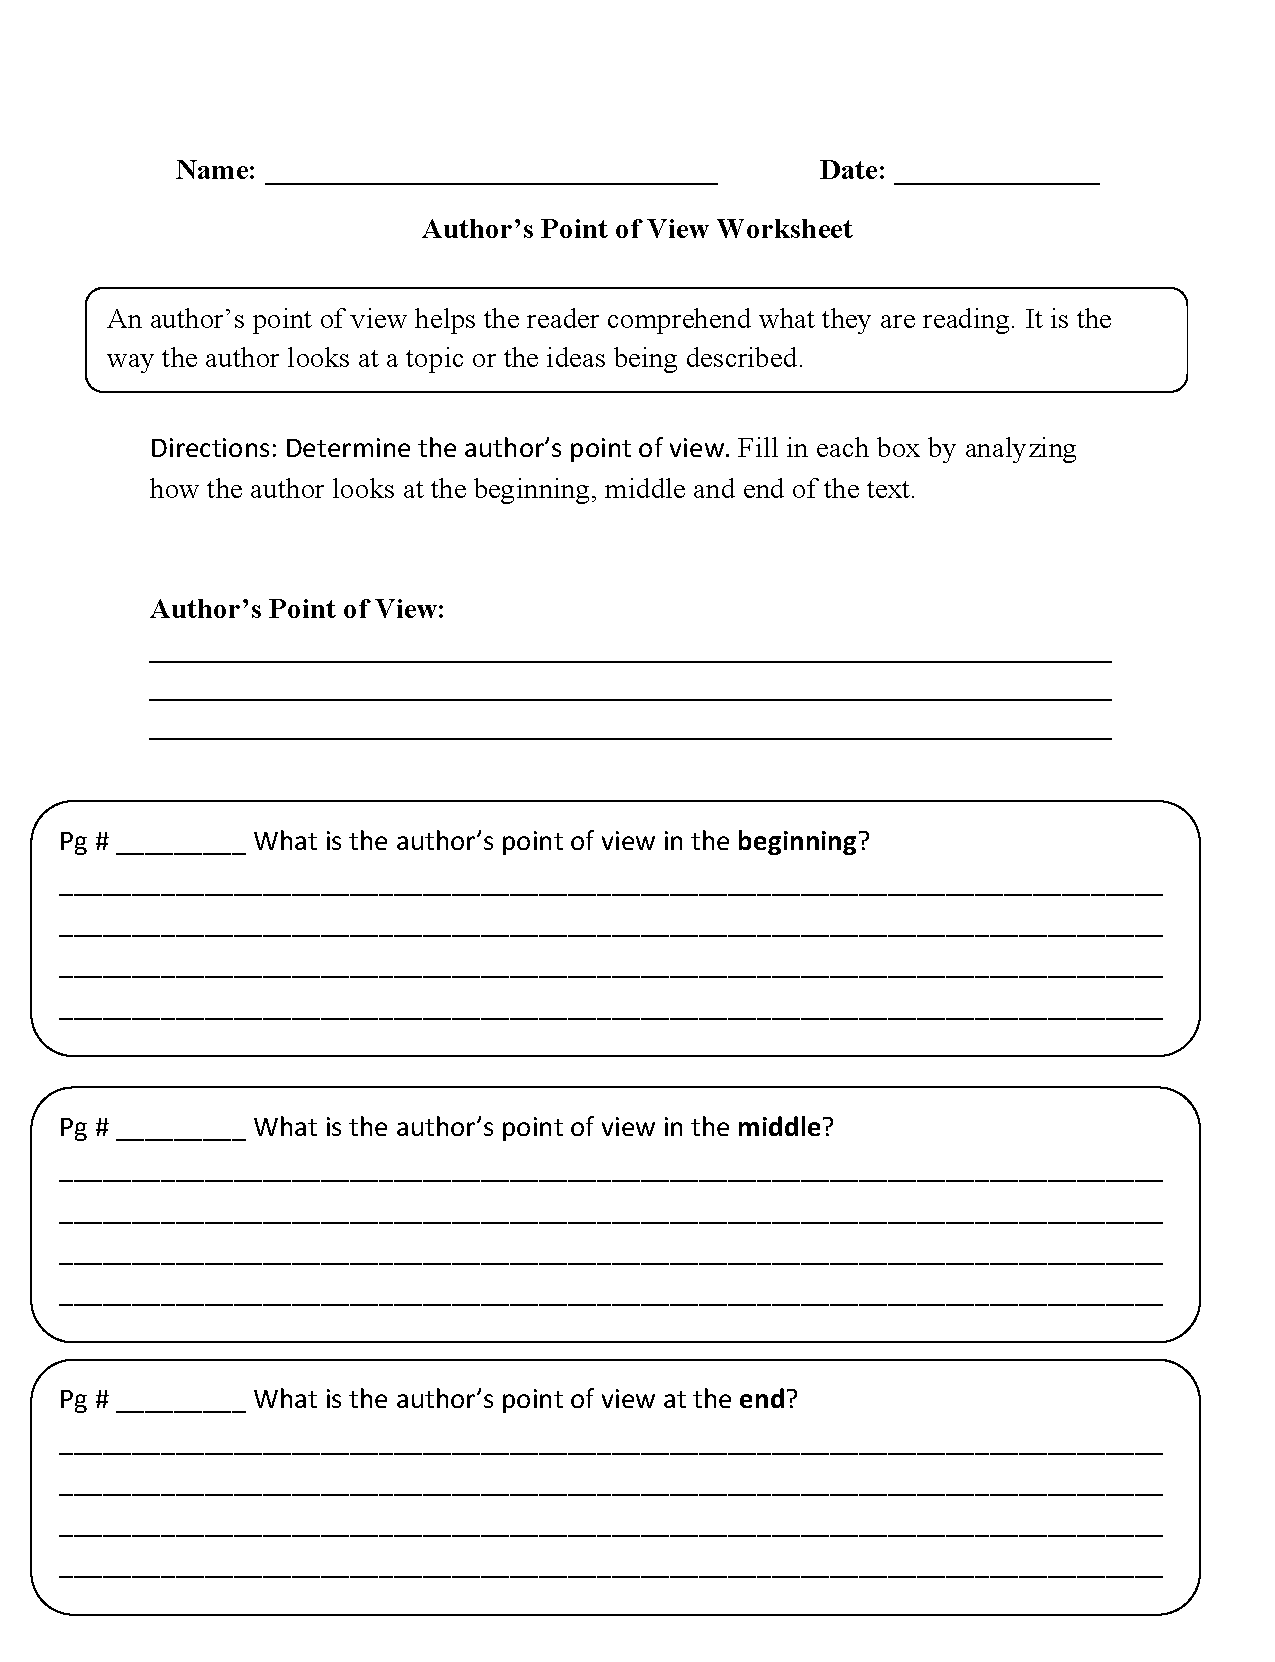 Weirdmailus  Outstanding Englishlinxcom  Point Of View Worksheets With Interesting Point Of View Worksheets With Cute Solar System Worksheets For Kids Also Worm Dissection Worksheet In Addition Ordering Fractions Worksheet Pdf And Converting Fractions To Percents Worksheet As Well As Pre K Sight Word Worksheets Additionally Us States Worksheet From Englishlinxcom With Weirdmailus  Interesting Englishlinxcom  Point Of View Worksheets With Cute Point Of View Worksheets And Outstanding Solar System Worksheets For Kids Also Worm Dissection Worksheet In Addition Ordering Fractions Worksheet Pdf From Englishlinxcom